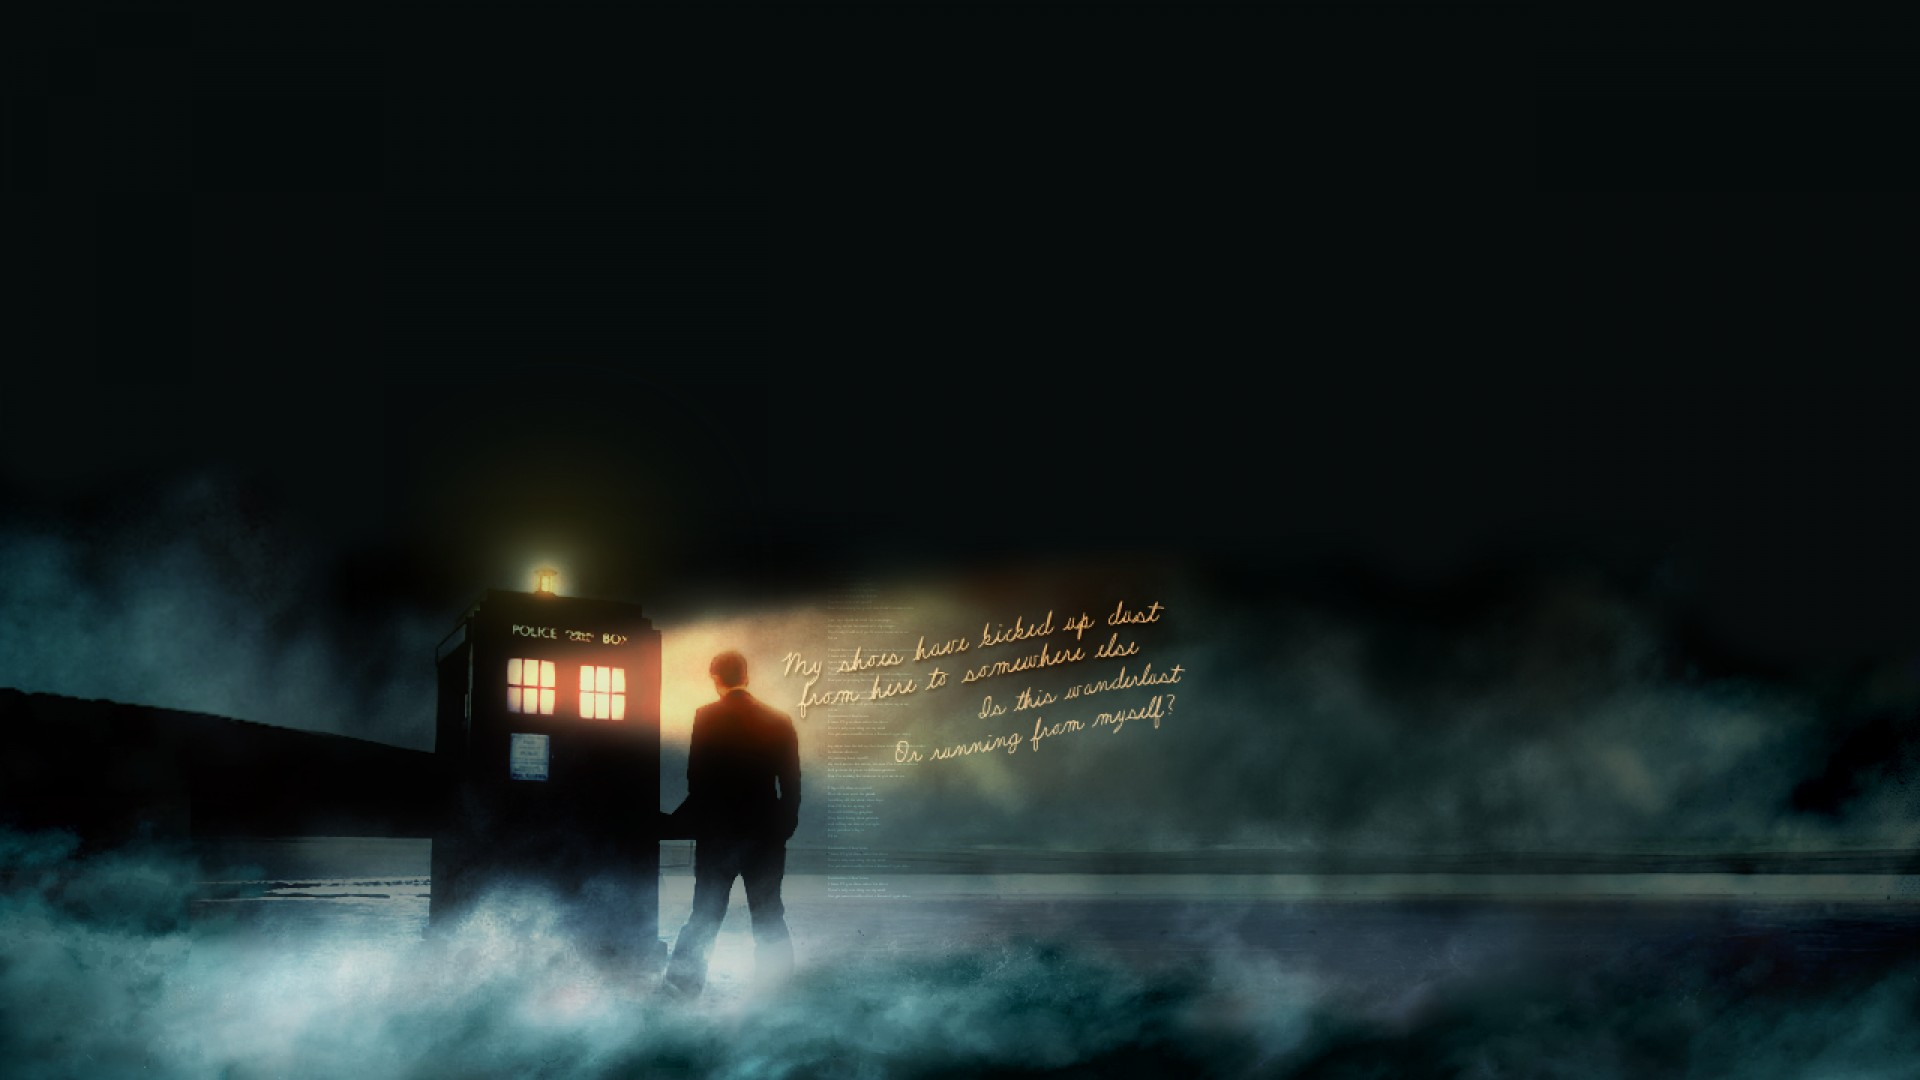 Collection of Dr Who Desktop Wallpaper on HDWallpapers